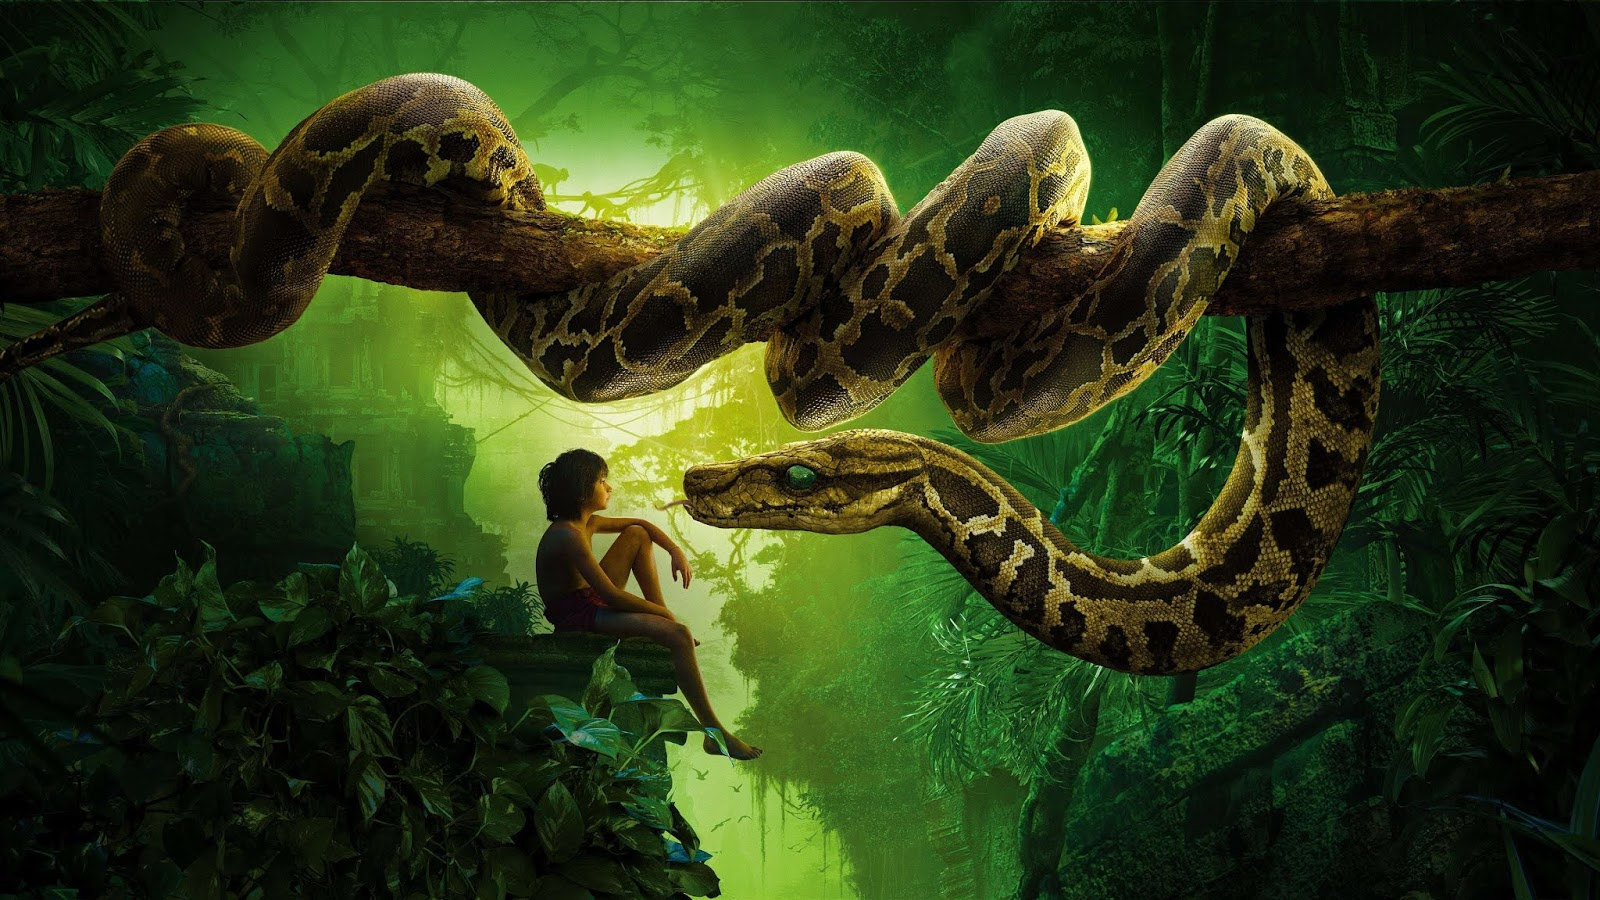 The Jungle Book (2016) - Neel Sethi as Mowgli, the orphaned human boy, and Scarlett Johansson as Kaa, the enormous female python